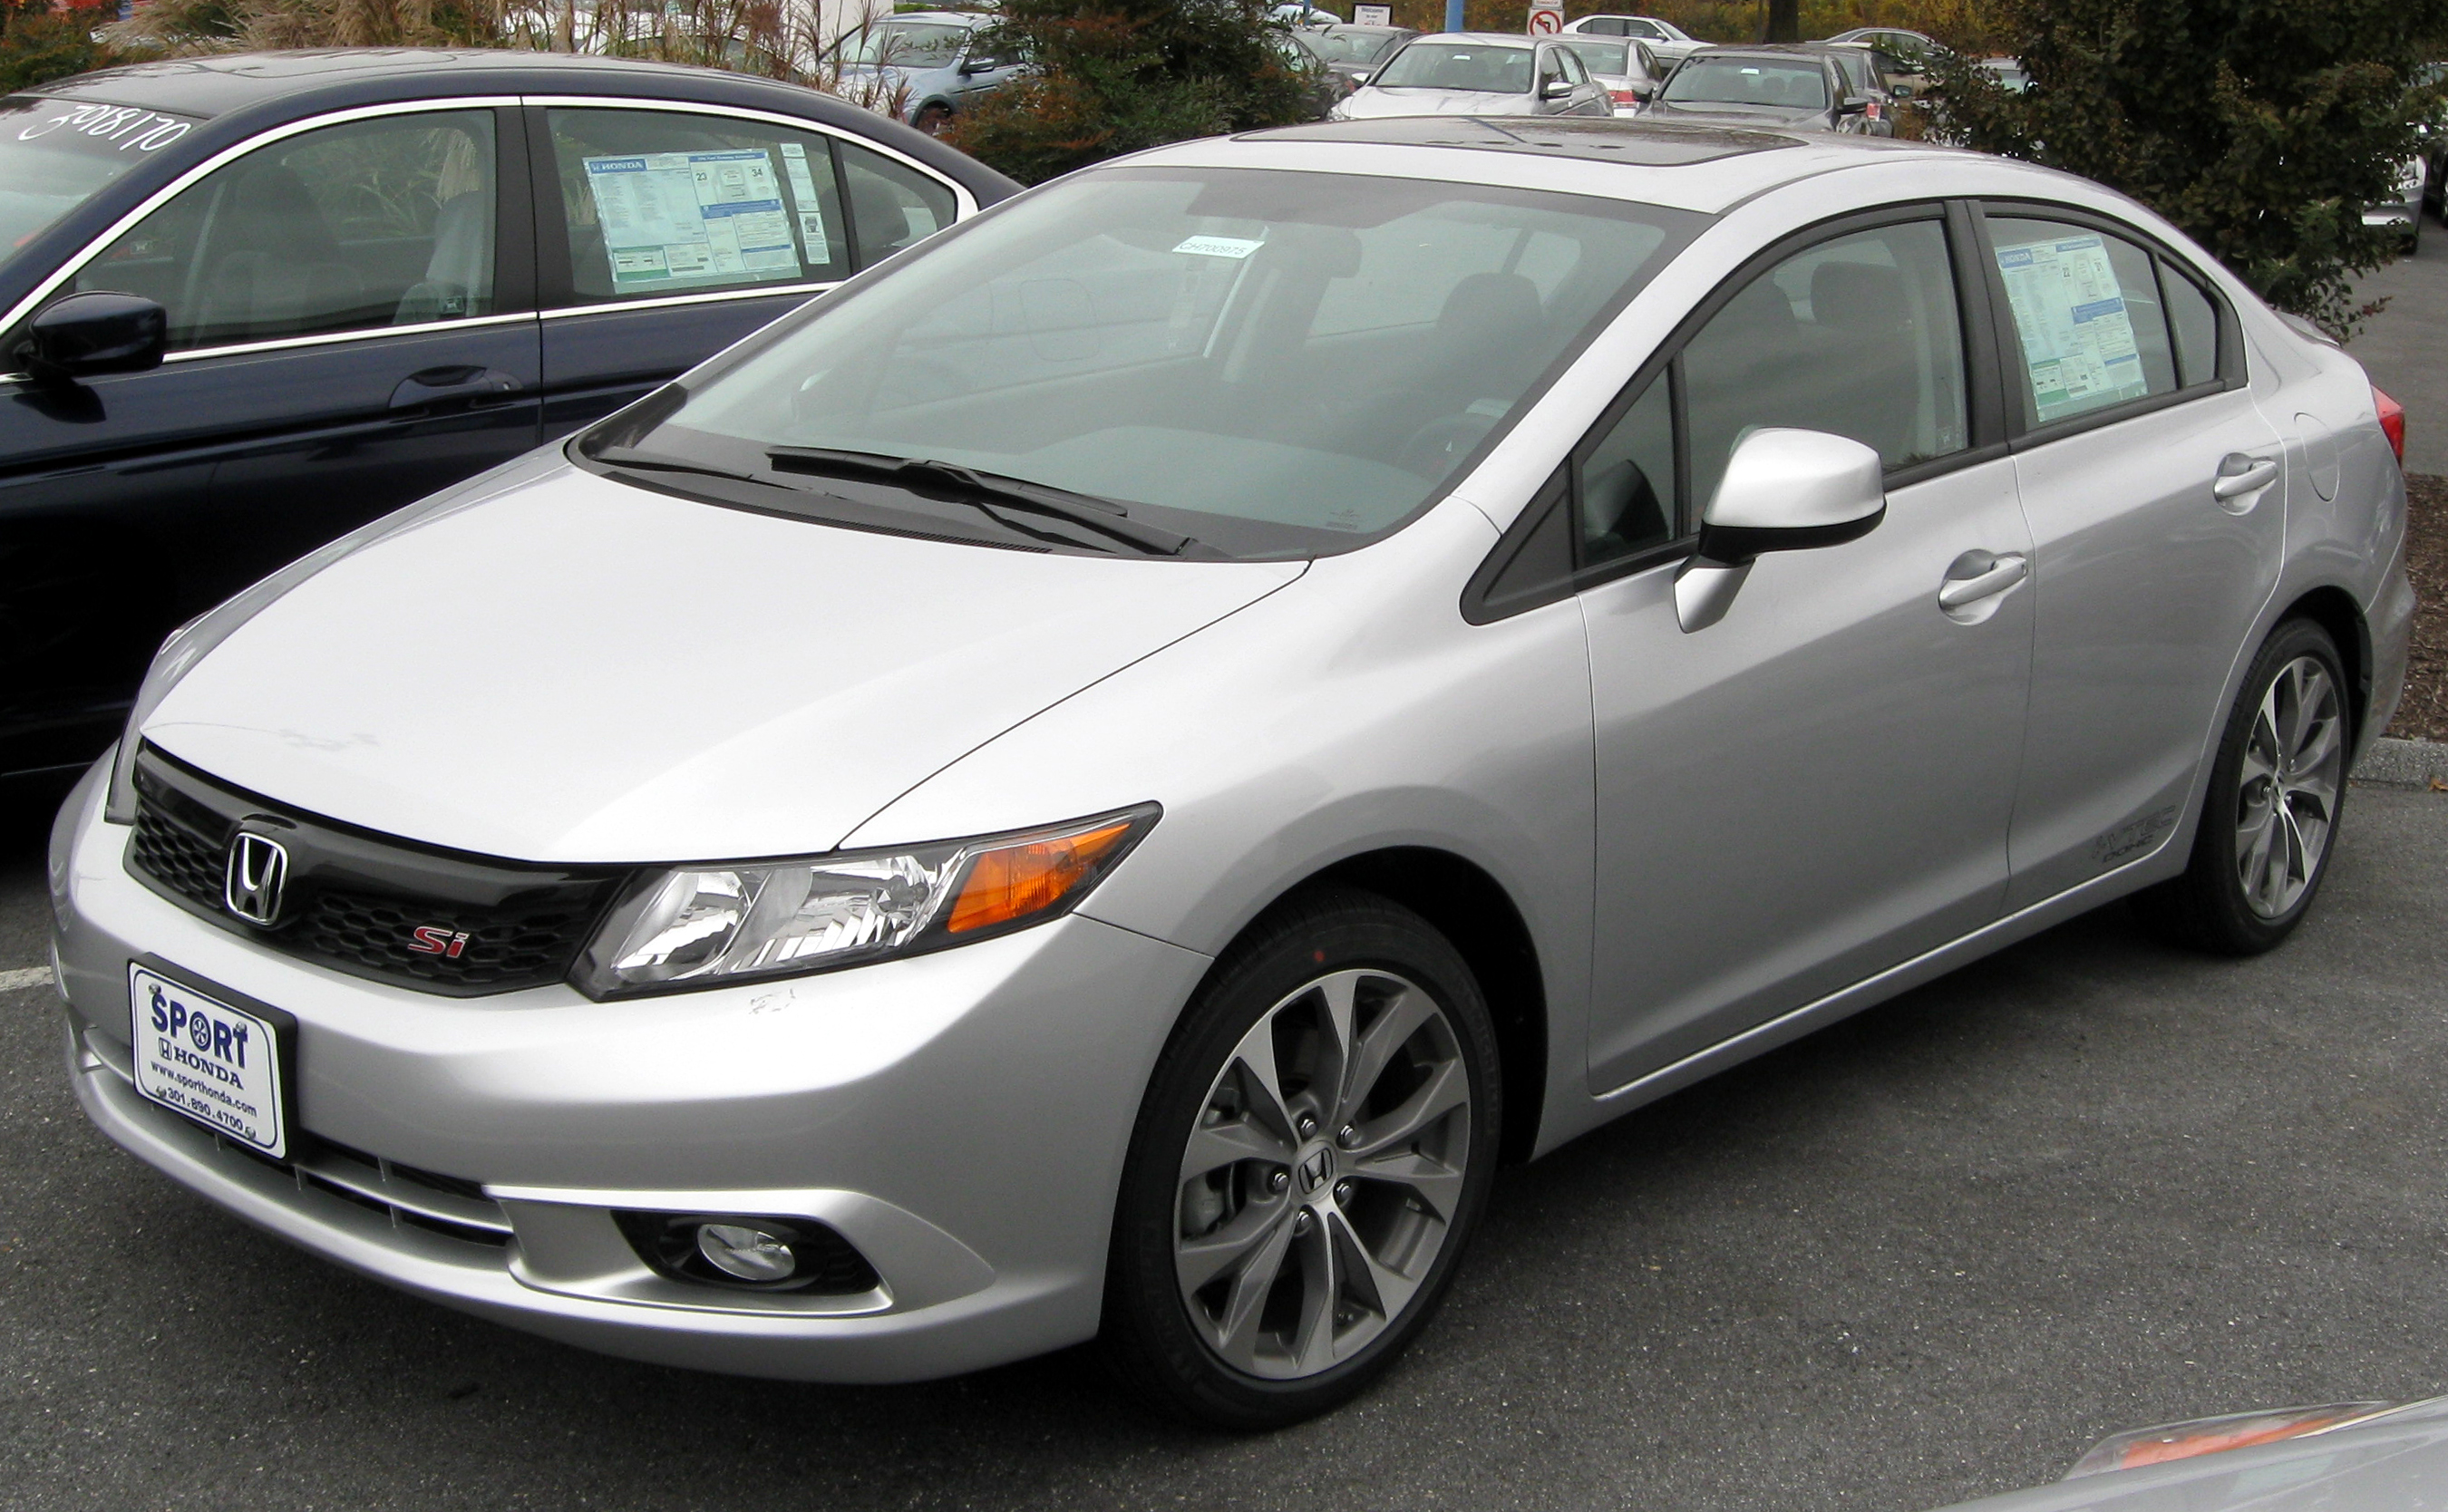 File:2012 Honda Civic Si Sedan    11 10 2011